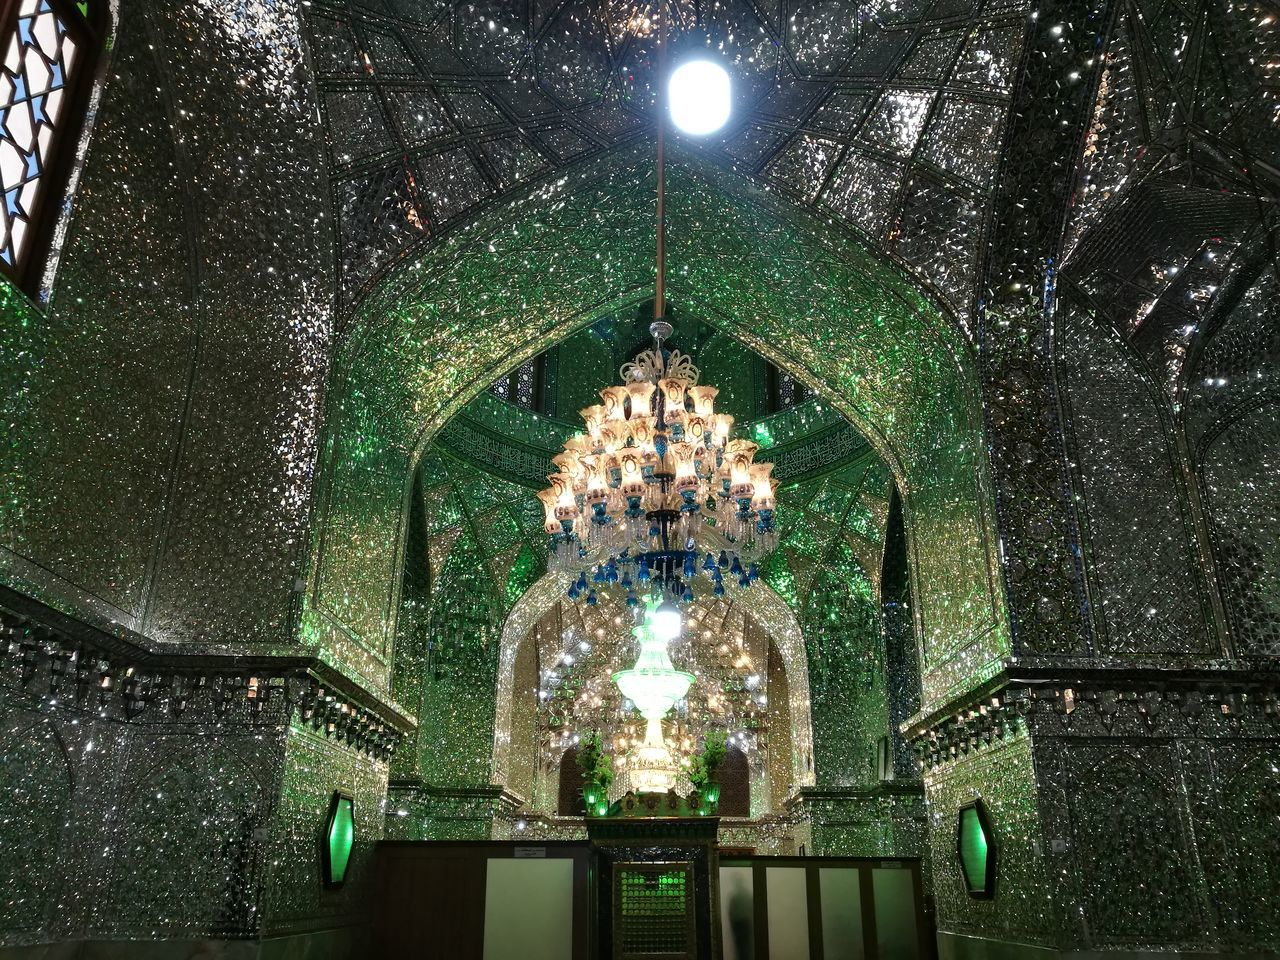 Ali Ebn-e Hamza Holy Shrine in Shiraz, Iran. The interior of this Holy Shrine is all made by glasses Architecture Traveling EyeEm Iran♥ Travel Tourism Iran Middleeast Irantravel Travel Destinations Holyshrine Interior Architecture Glasses Glass Roof Glass Wall